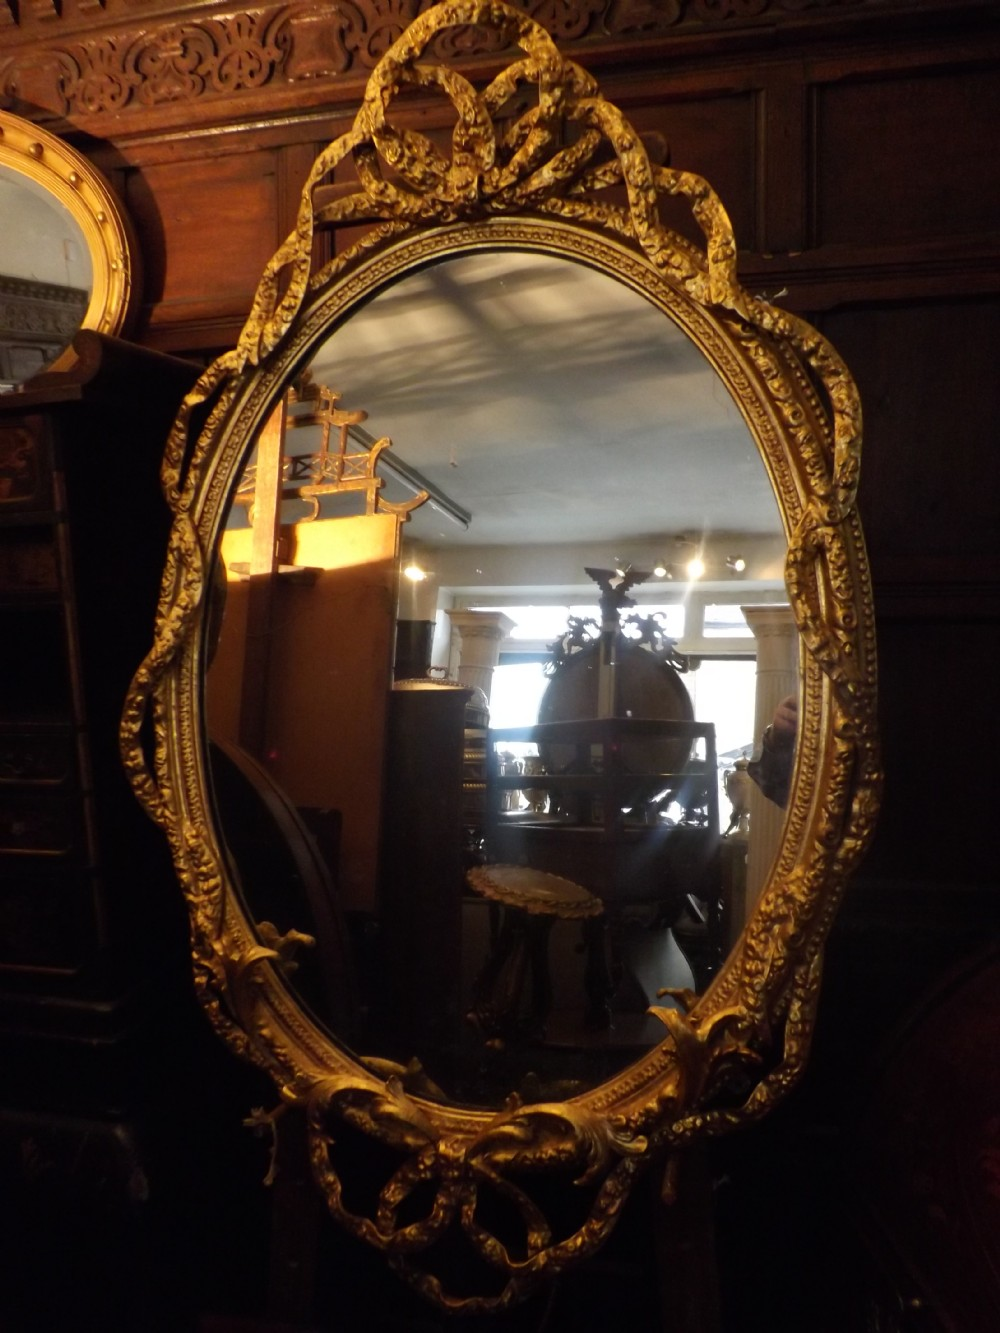 late c19th french giltwood and gessoframed oval mirror of good large scale